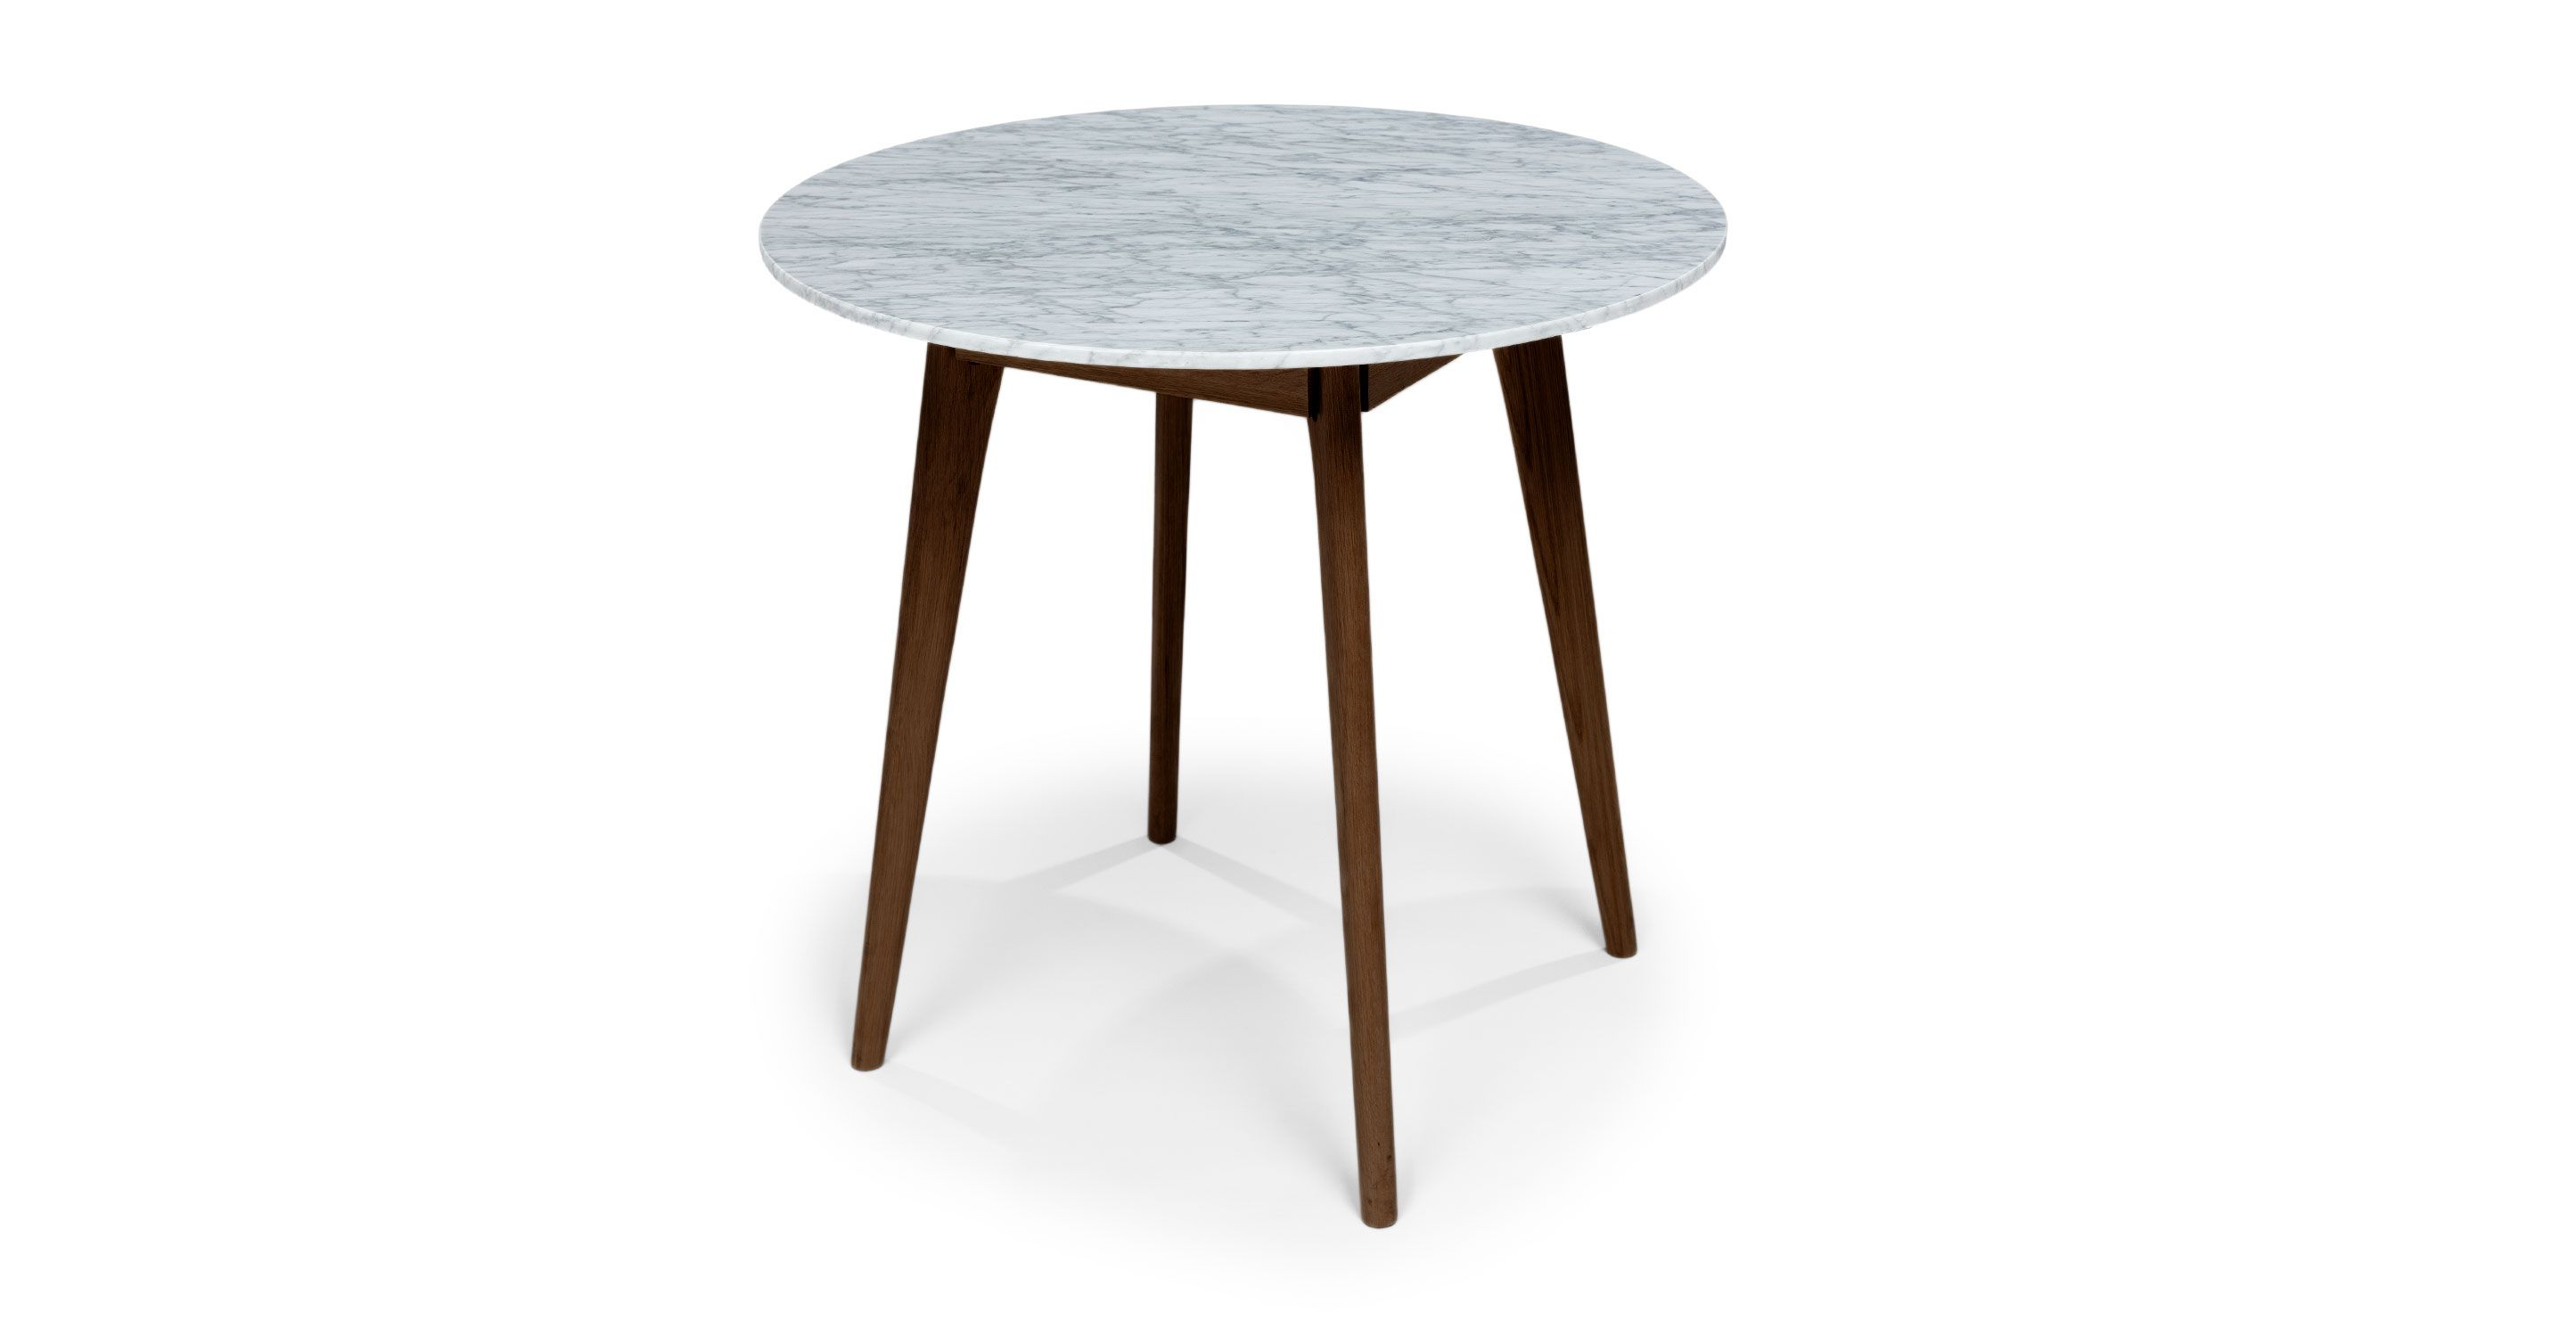 Attractive Mara Walnut Cafe Table, Round   Dining Tables   Article | Modern,  Mid Century And Scandinavian Furniture